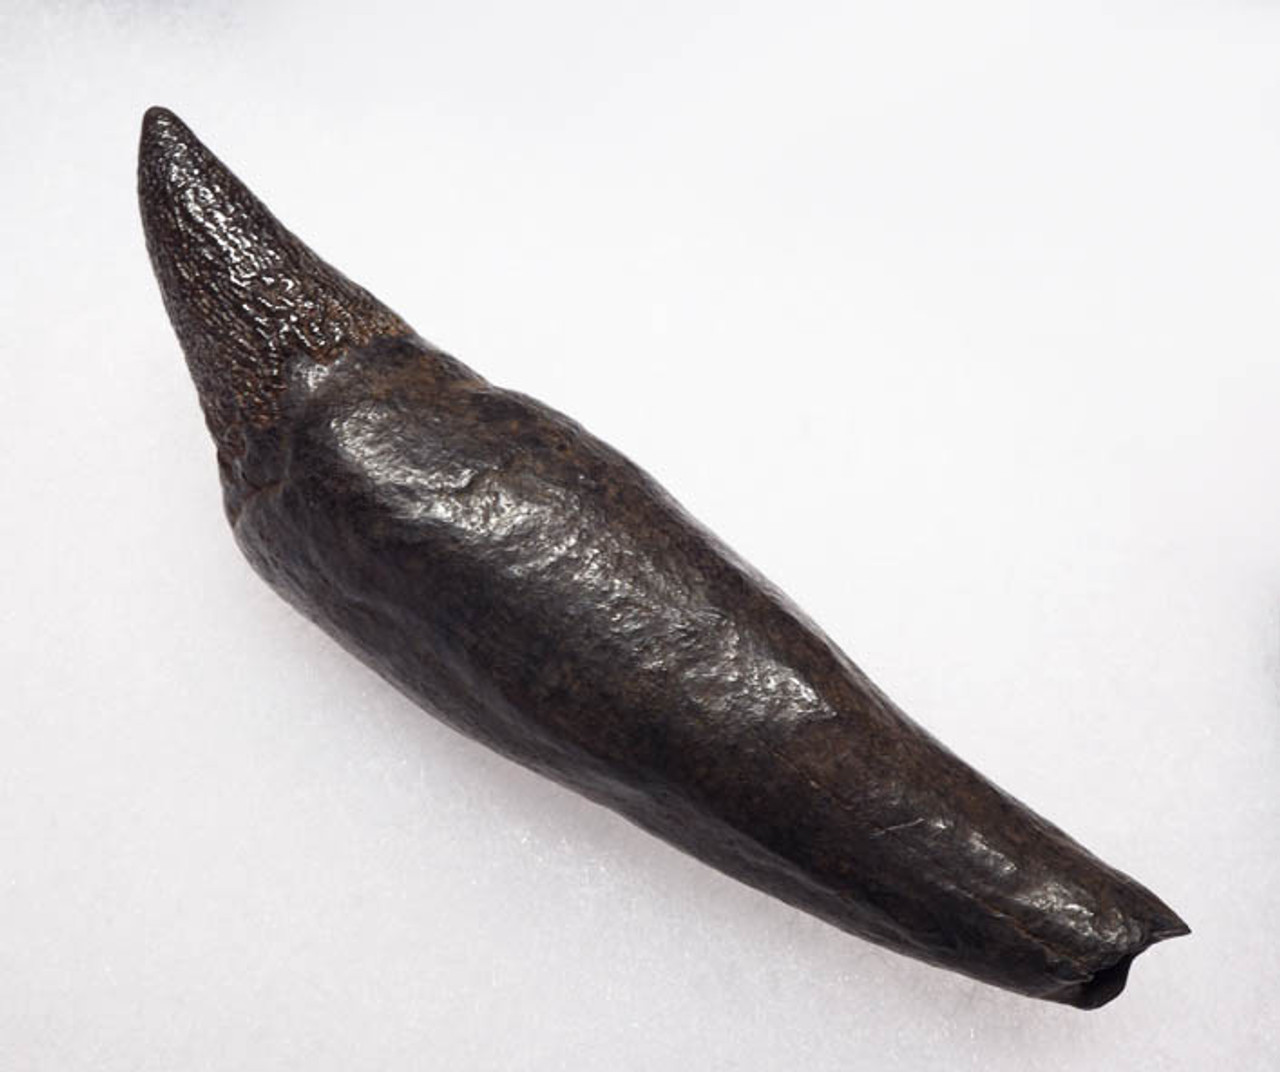 WH013 - COMPLETE 4 INCH PREHISTORIC SPERM WHALE TOOTH WITH SHARP UNWORN TIP AND FULL ROOT